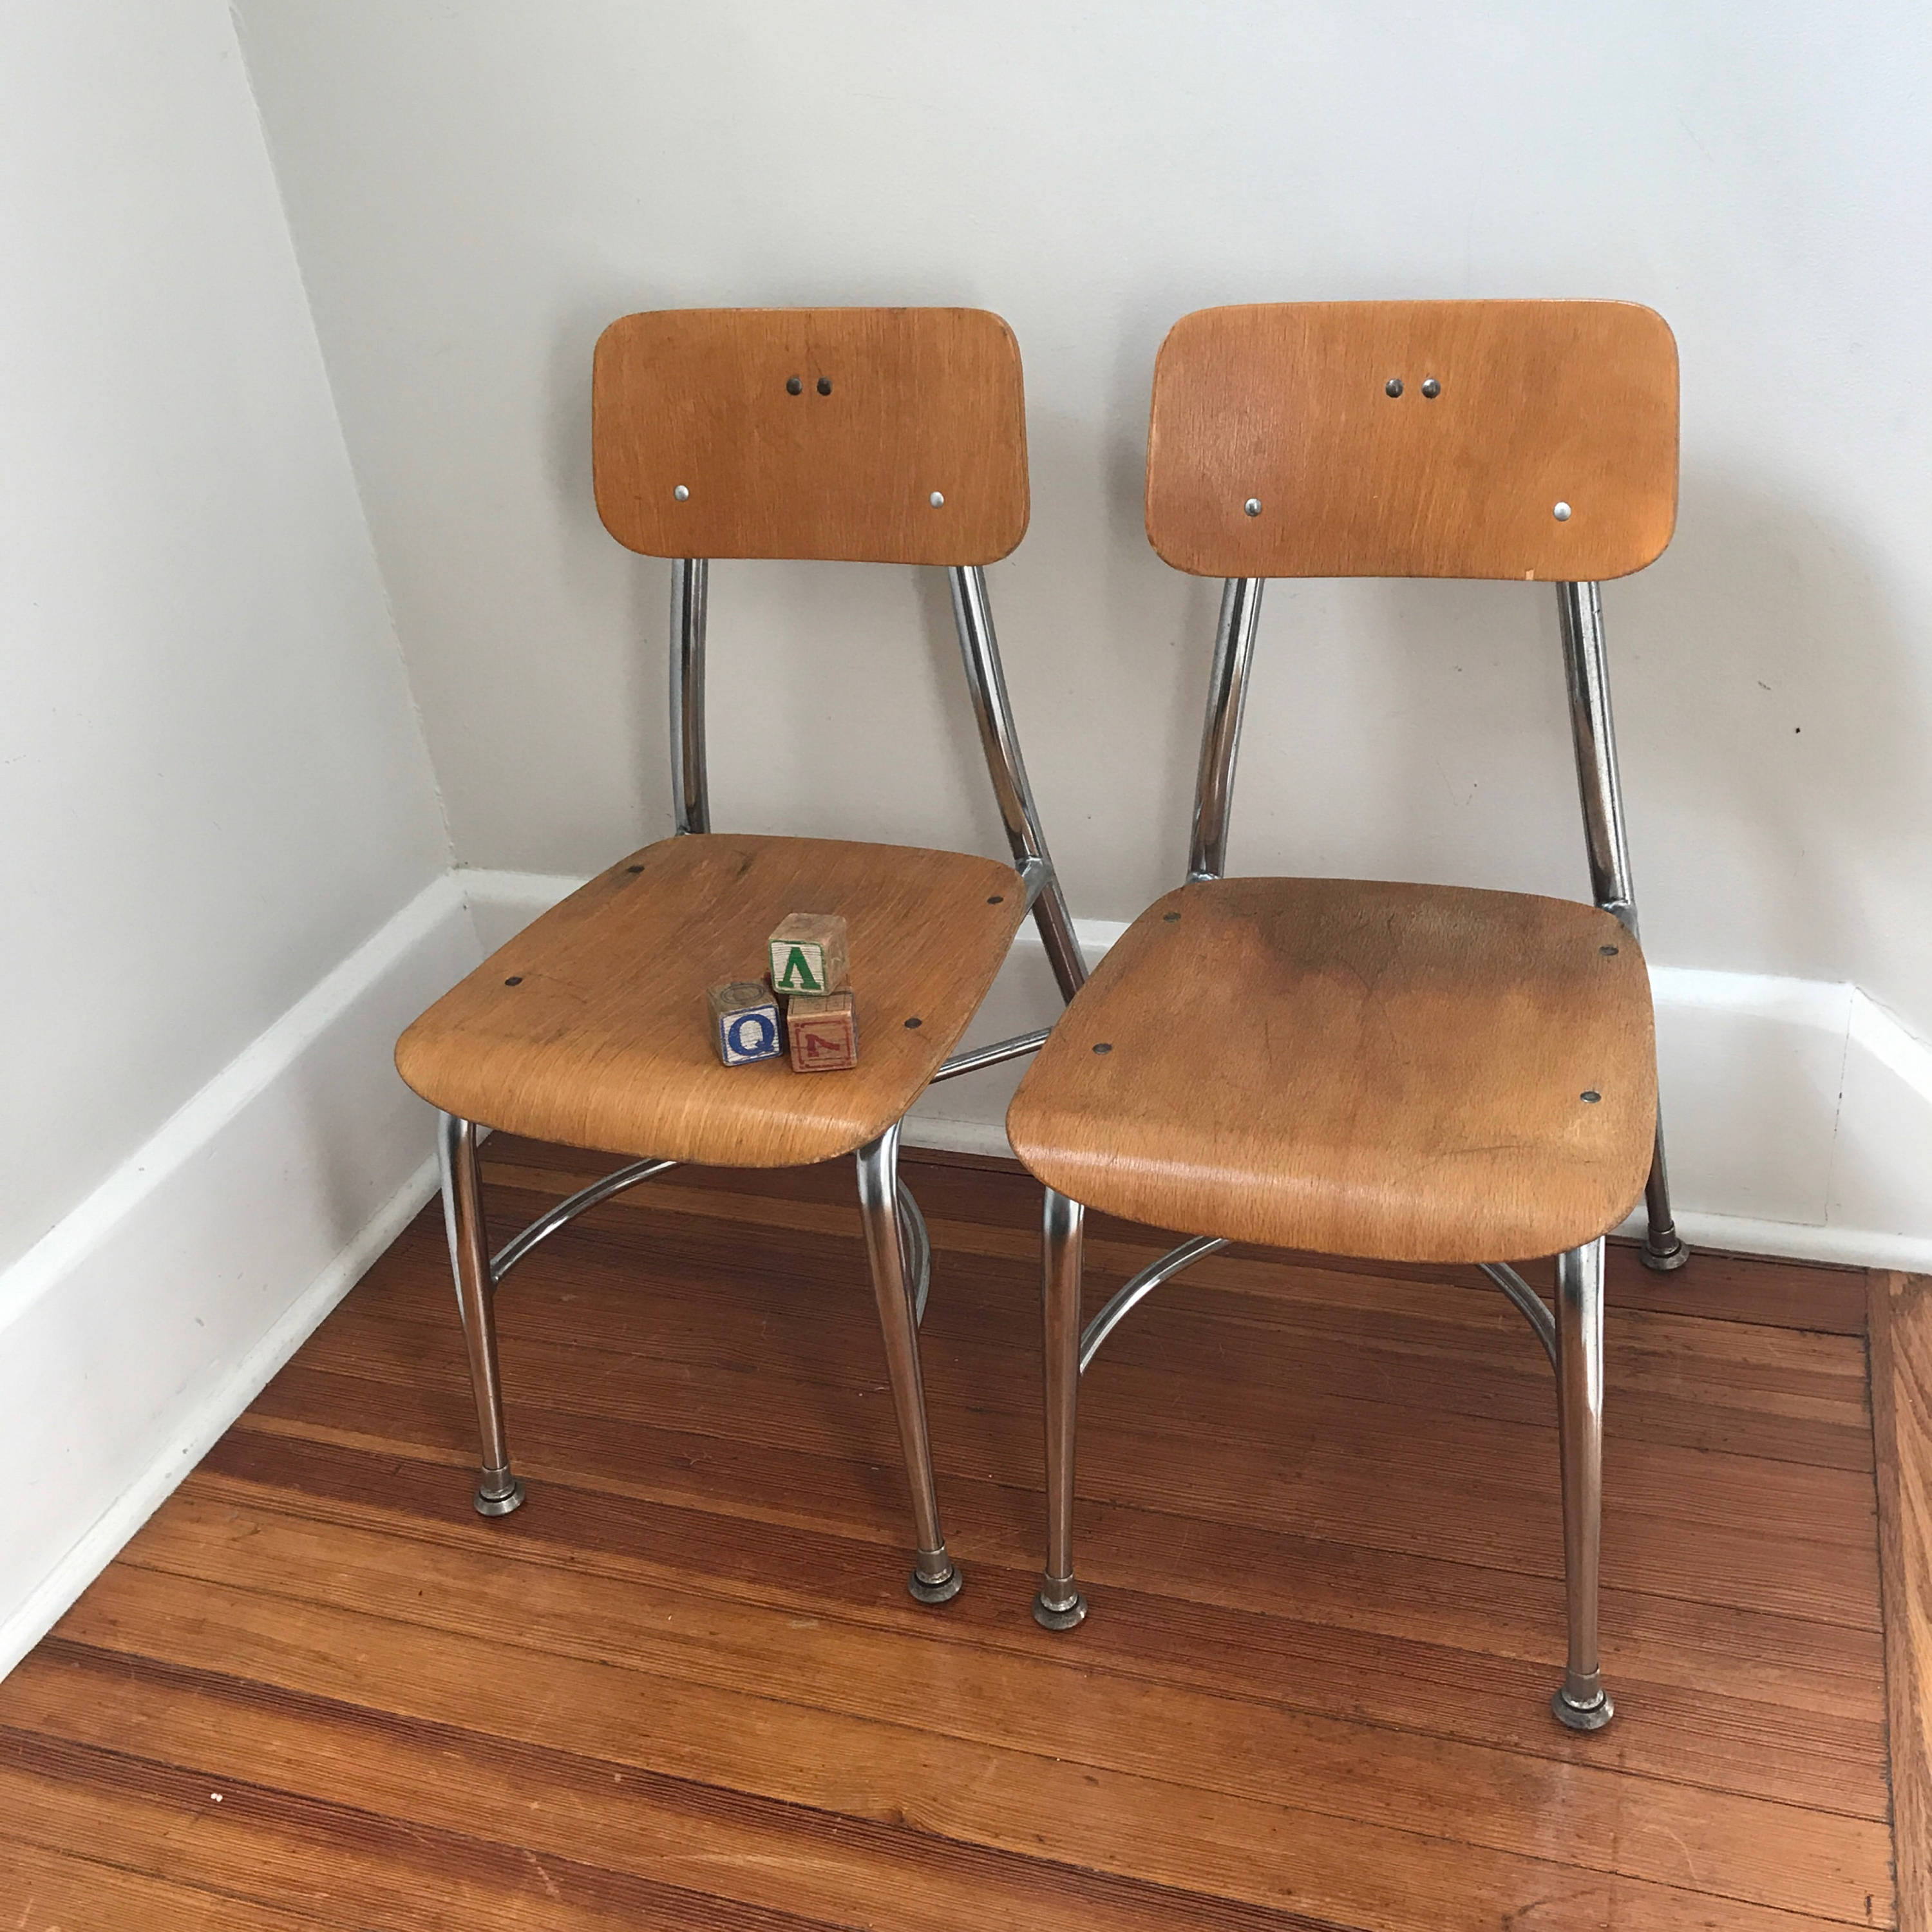 Vintage School Chairs Vintage Wood Metal School Chairs Child Size Heywood Wakefield Chairs Mid Century 12